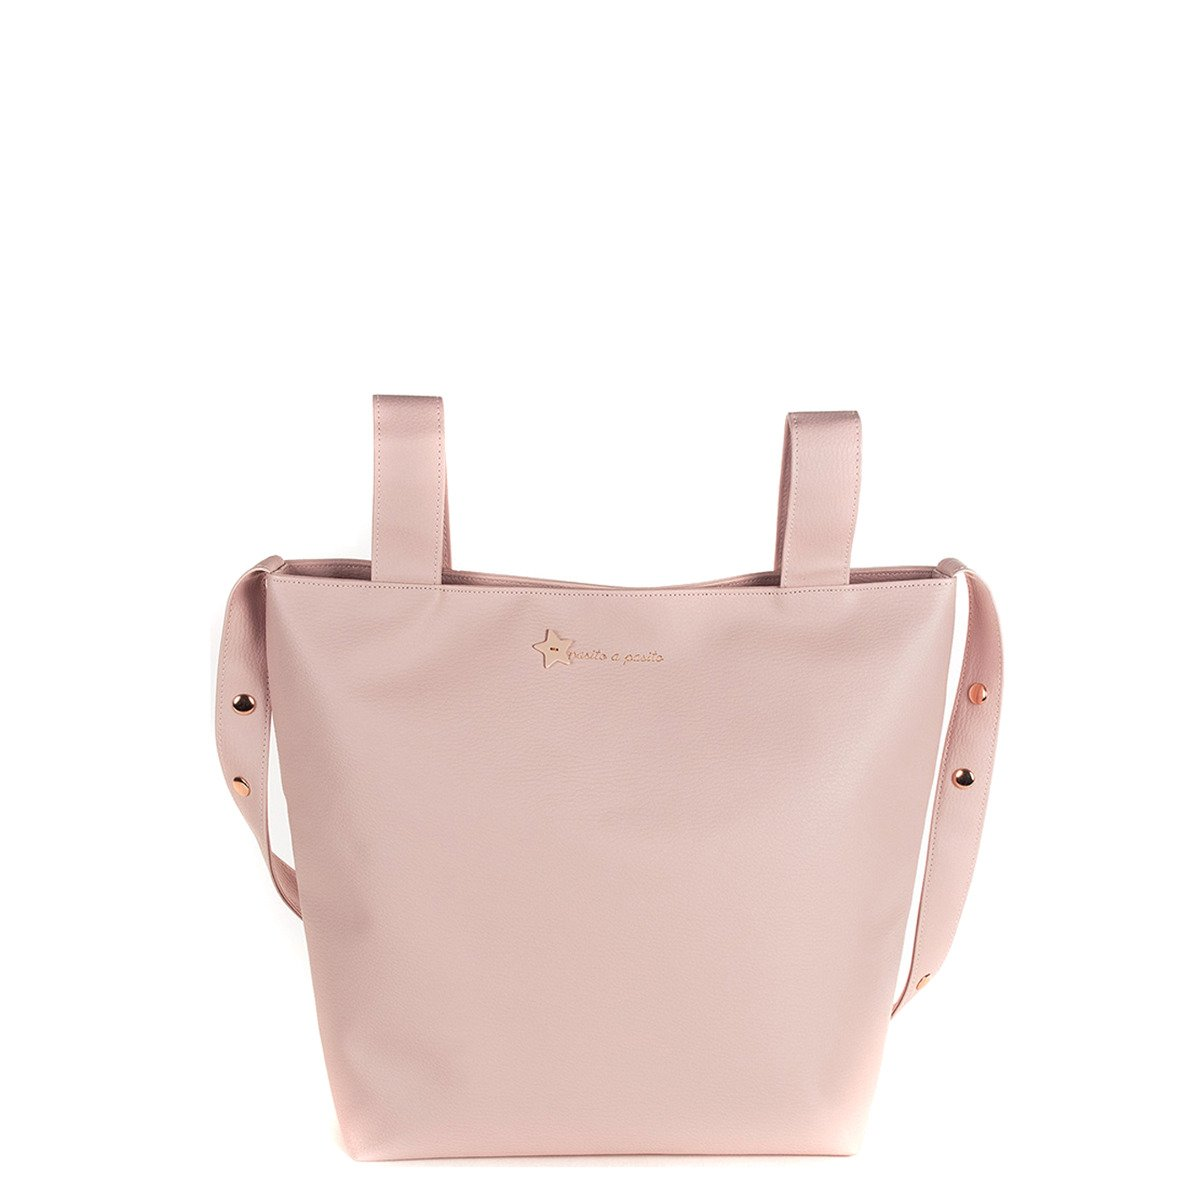 Pasito a Pasito - Nappy Bag or Purse for Buggy Elodie in Imitation Leather Nude Buggy Bag, Very Elegant and Practical, Carry All You Need for Your Baby 91866